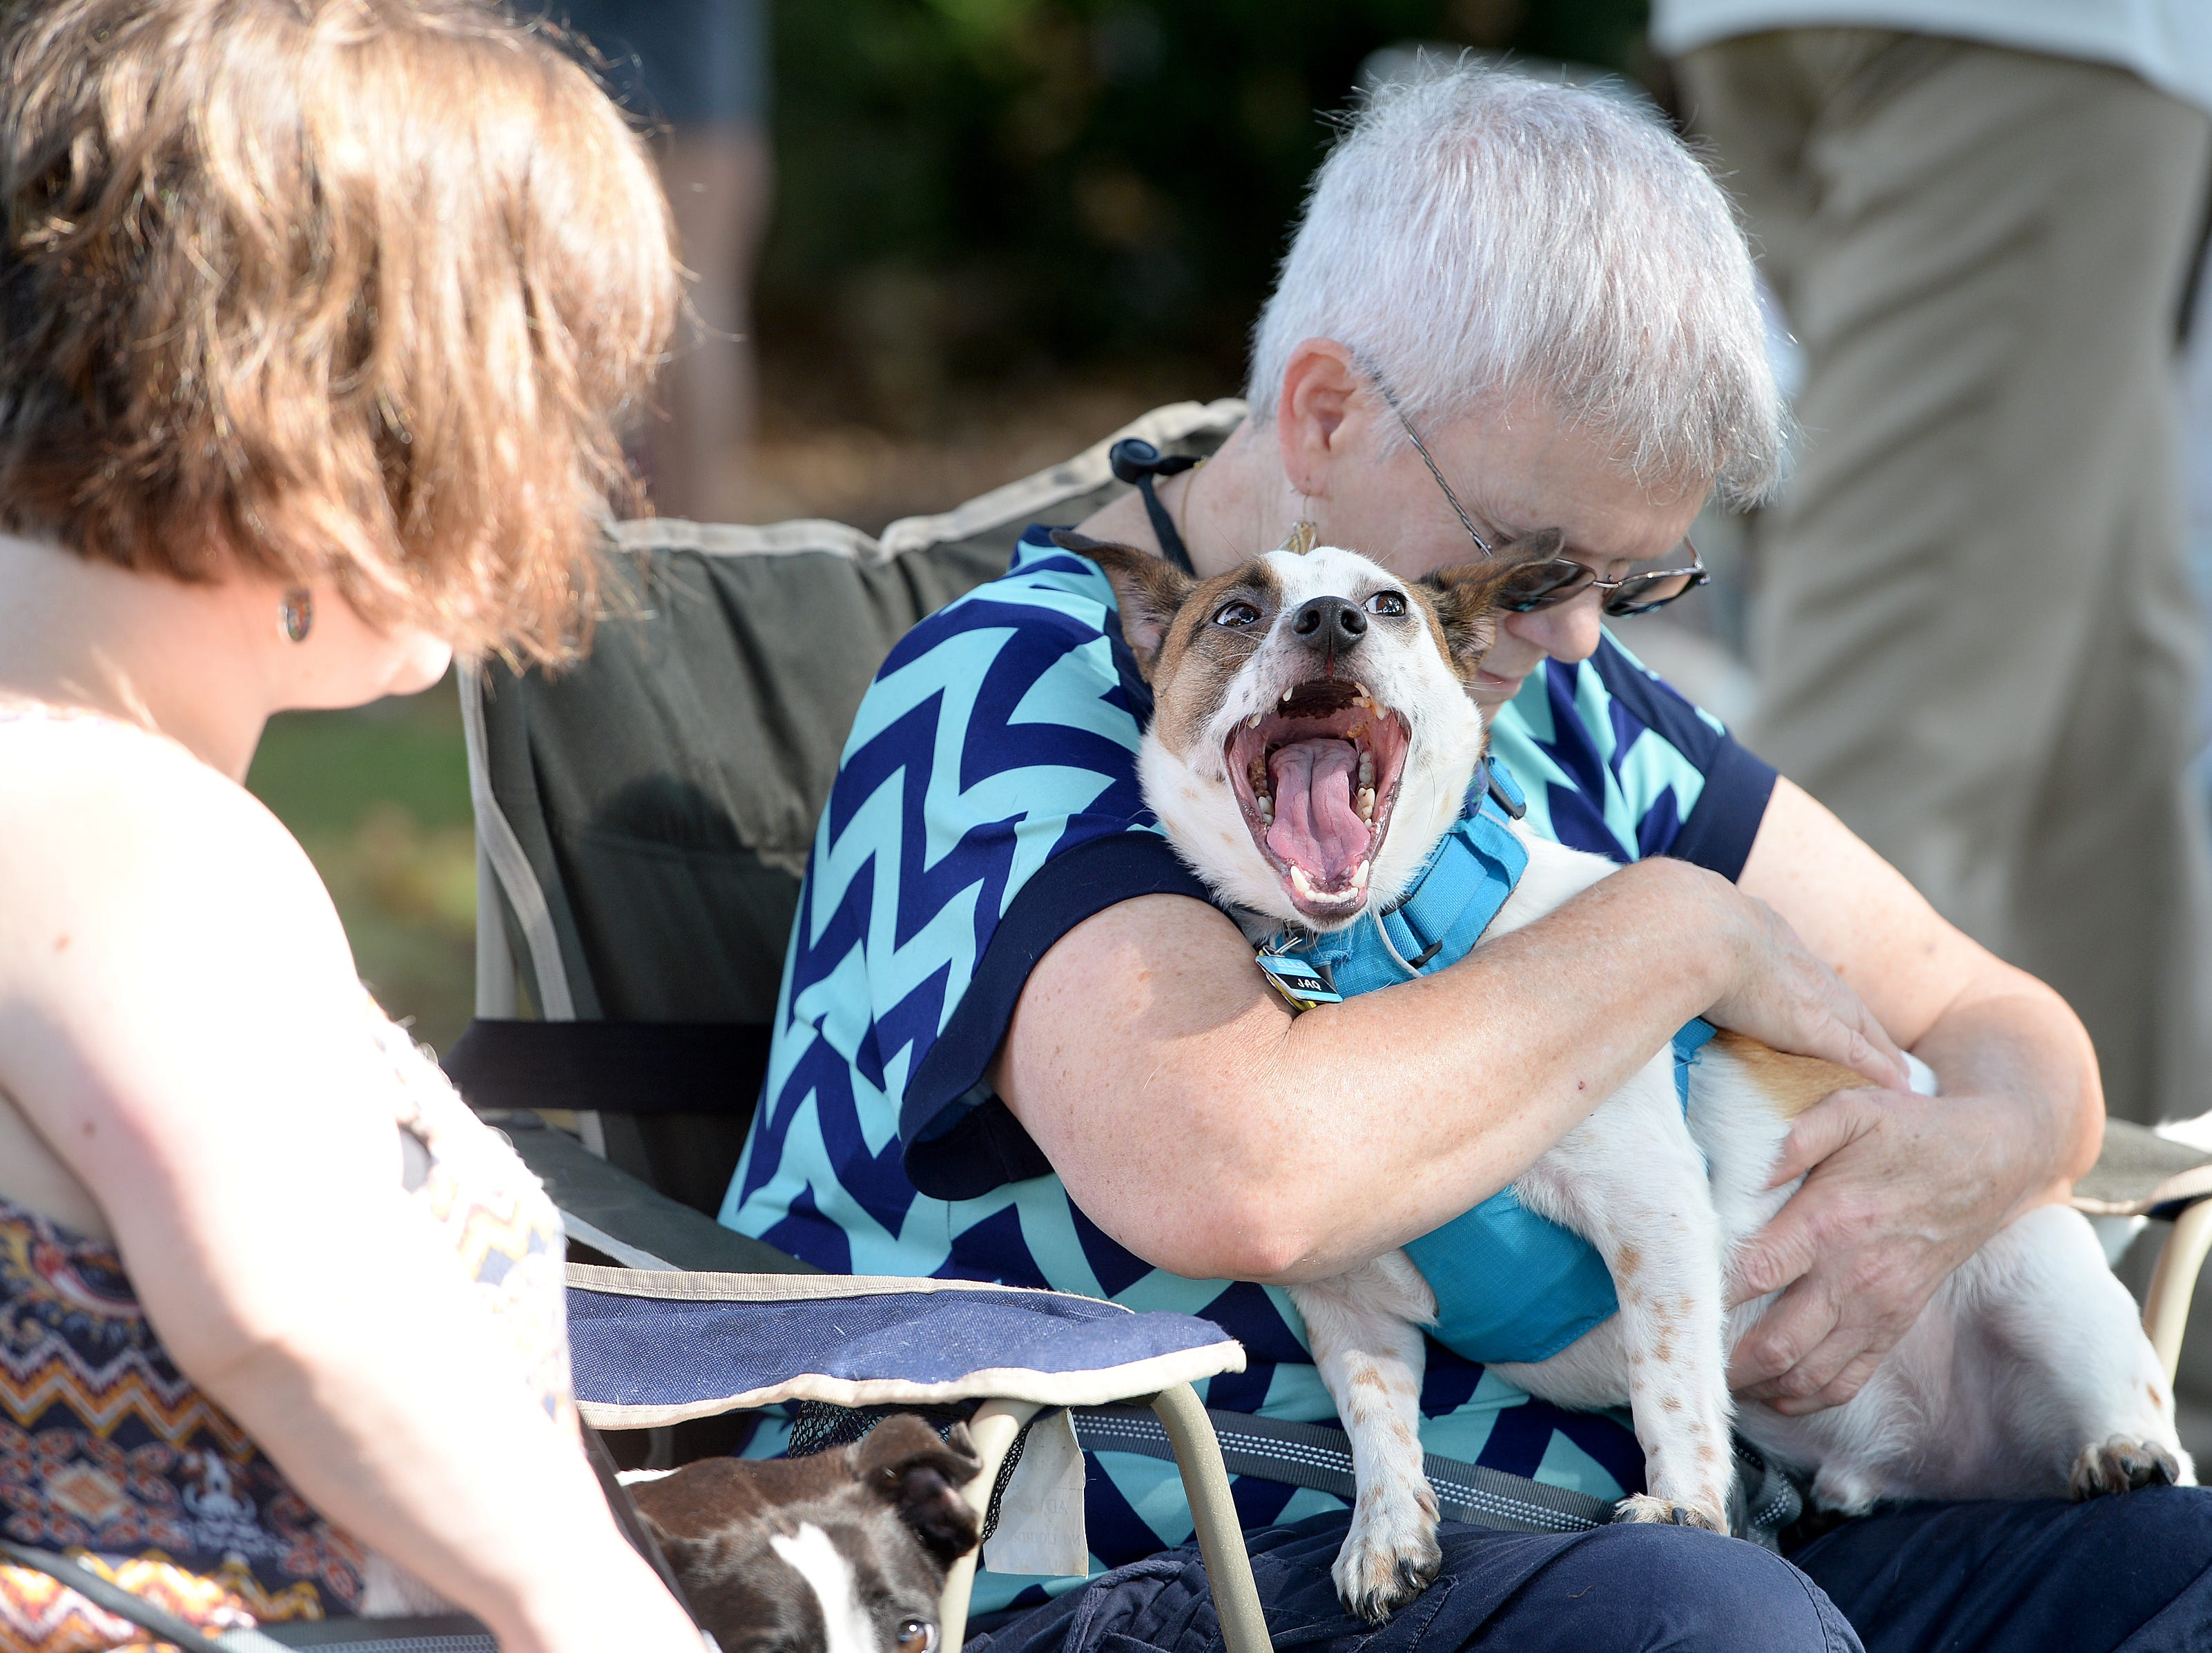 Carolyn Wilson, with her dog, Gus, bows her head in prayer during the 10th Annual Blessing of the Pets at Mills River Presbyterian Church on Sept. 8, 2018.